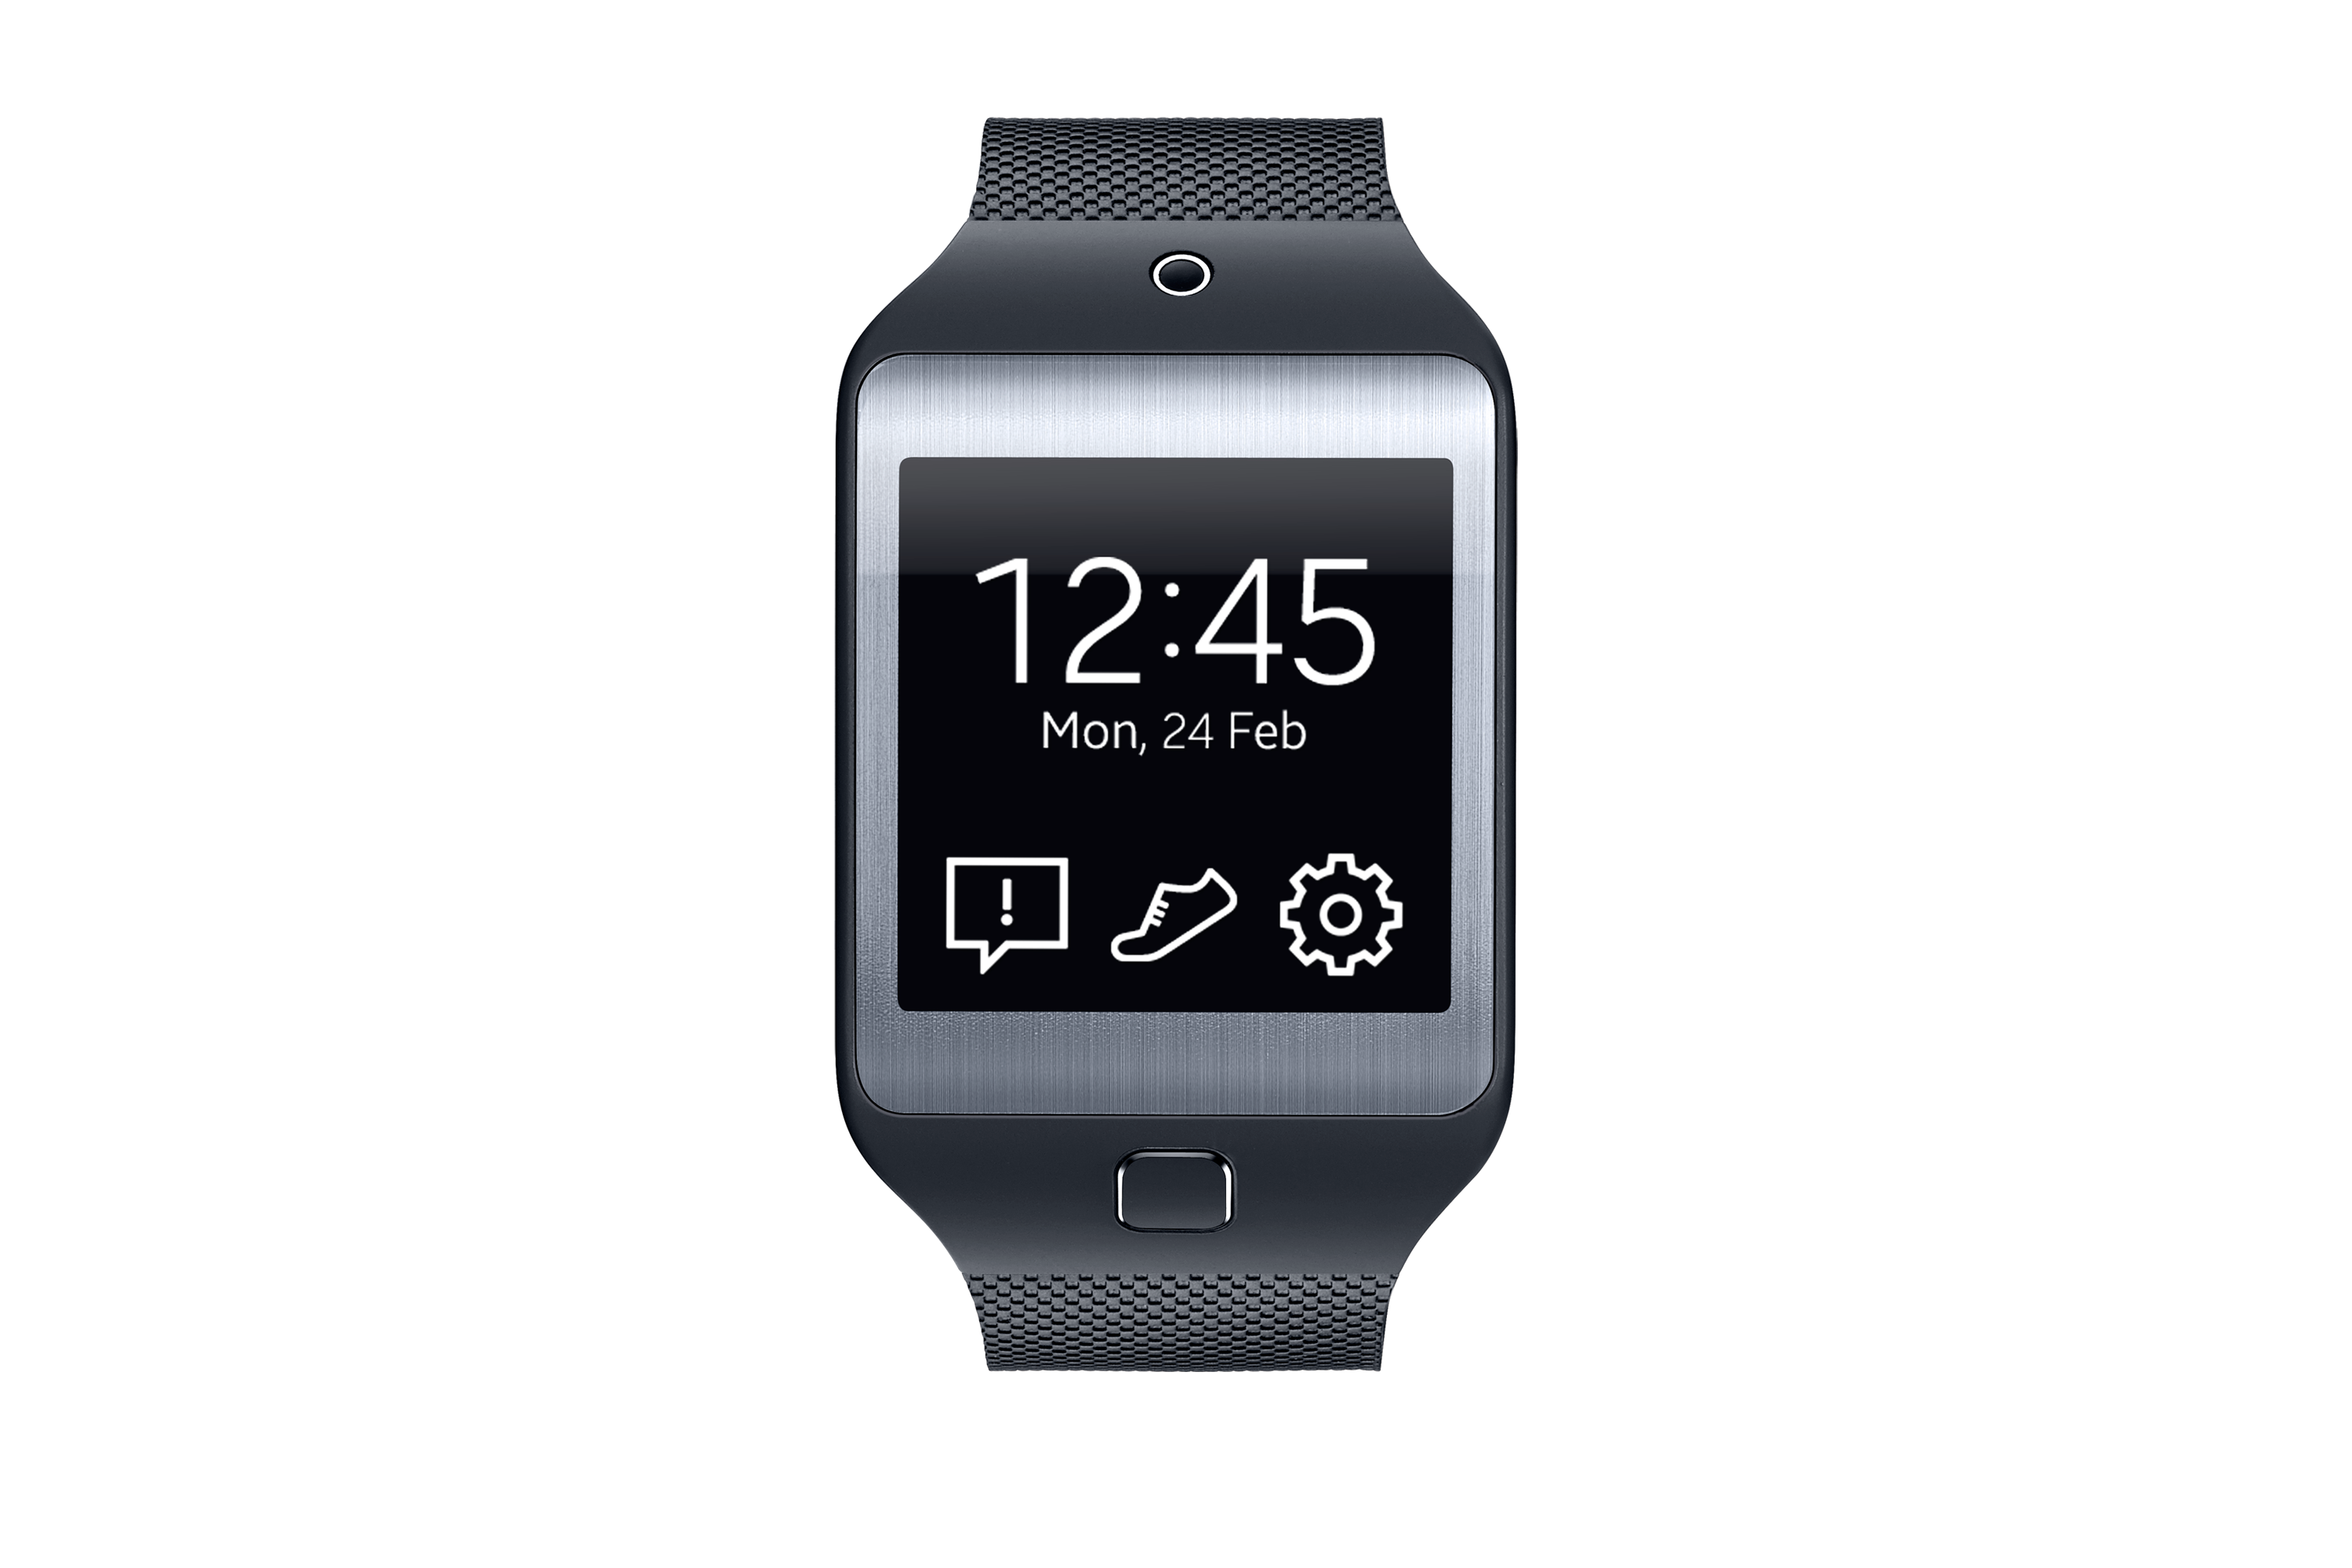 SM-R381 Gear 2 Neo (Charcoal Black)